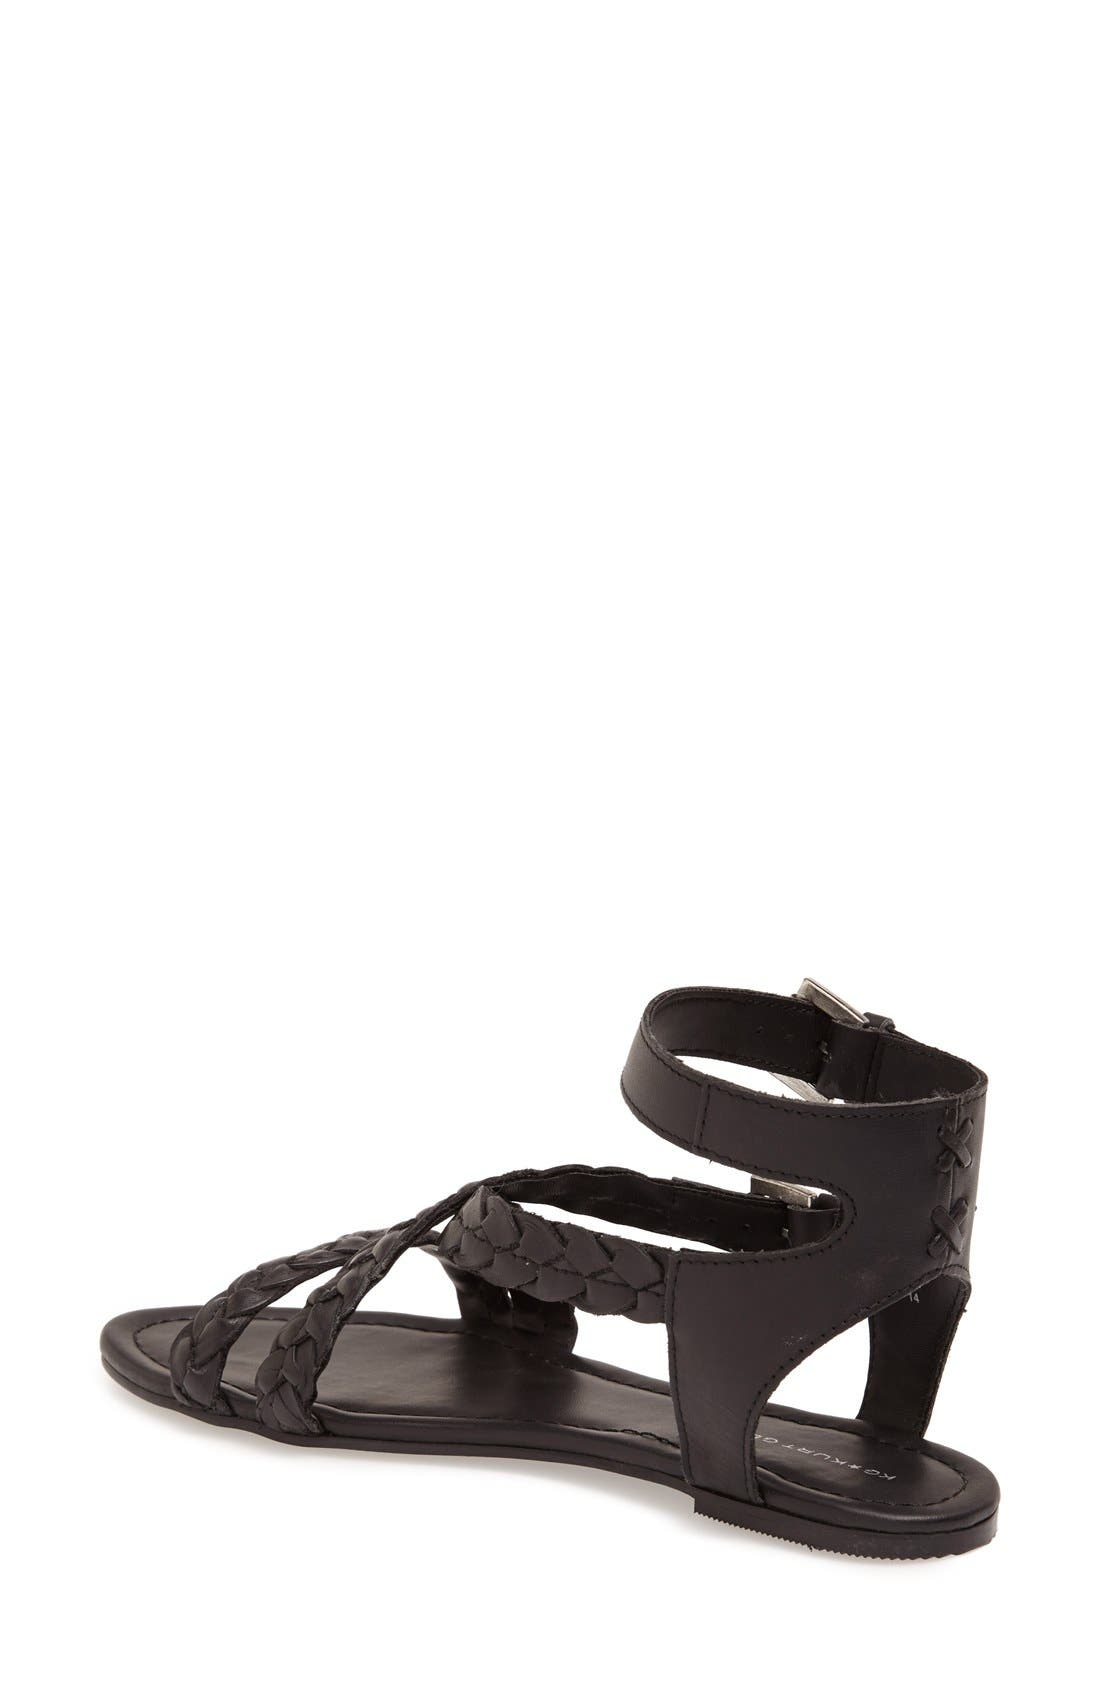 Alternate Image 2  - KG Kurt Geiger 'Magnum' Sandal (Women)